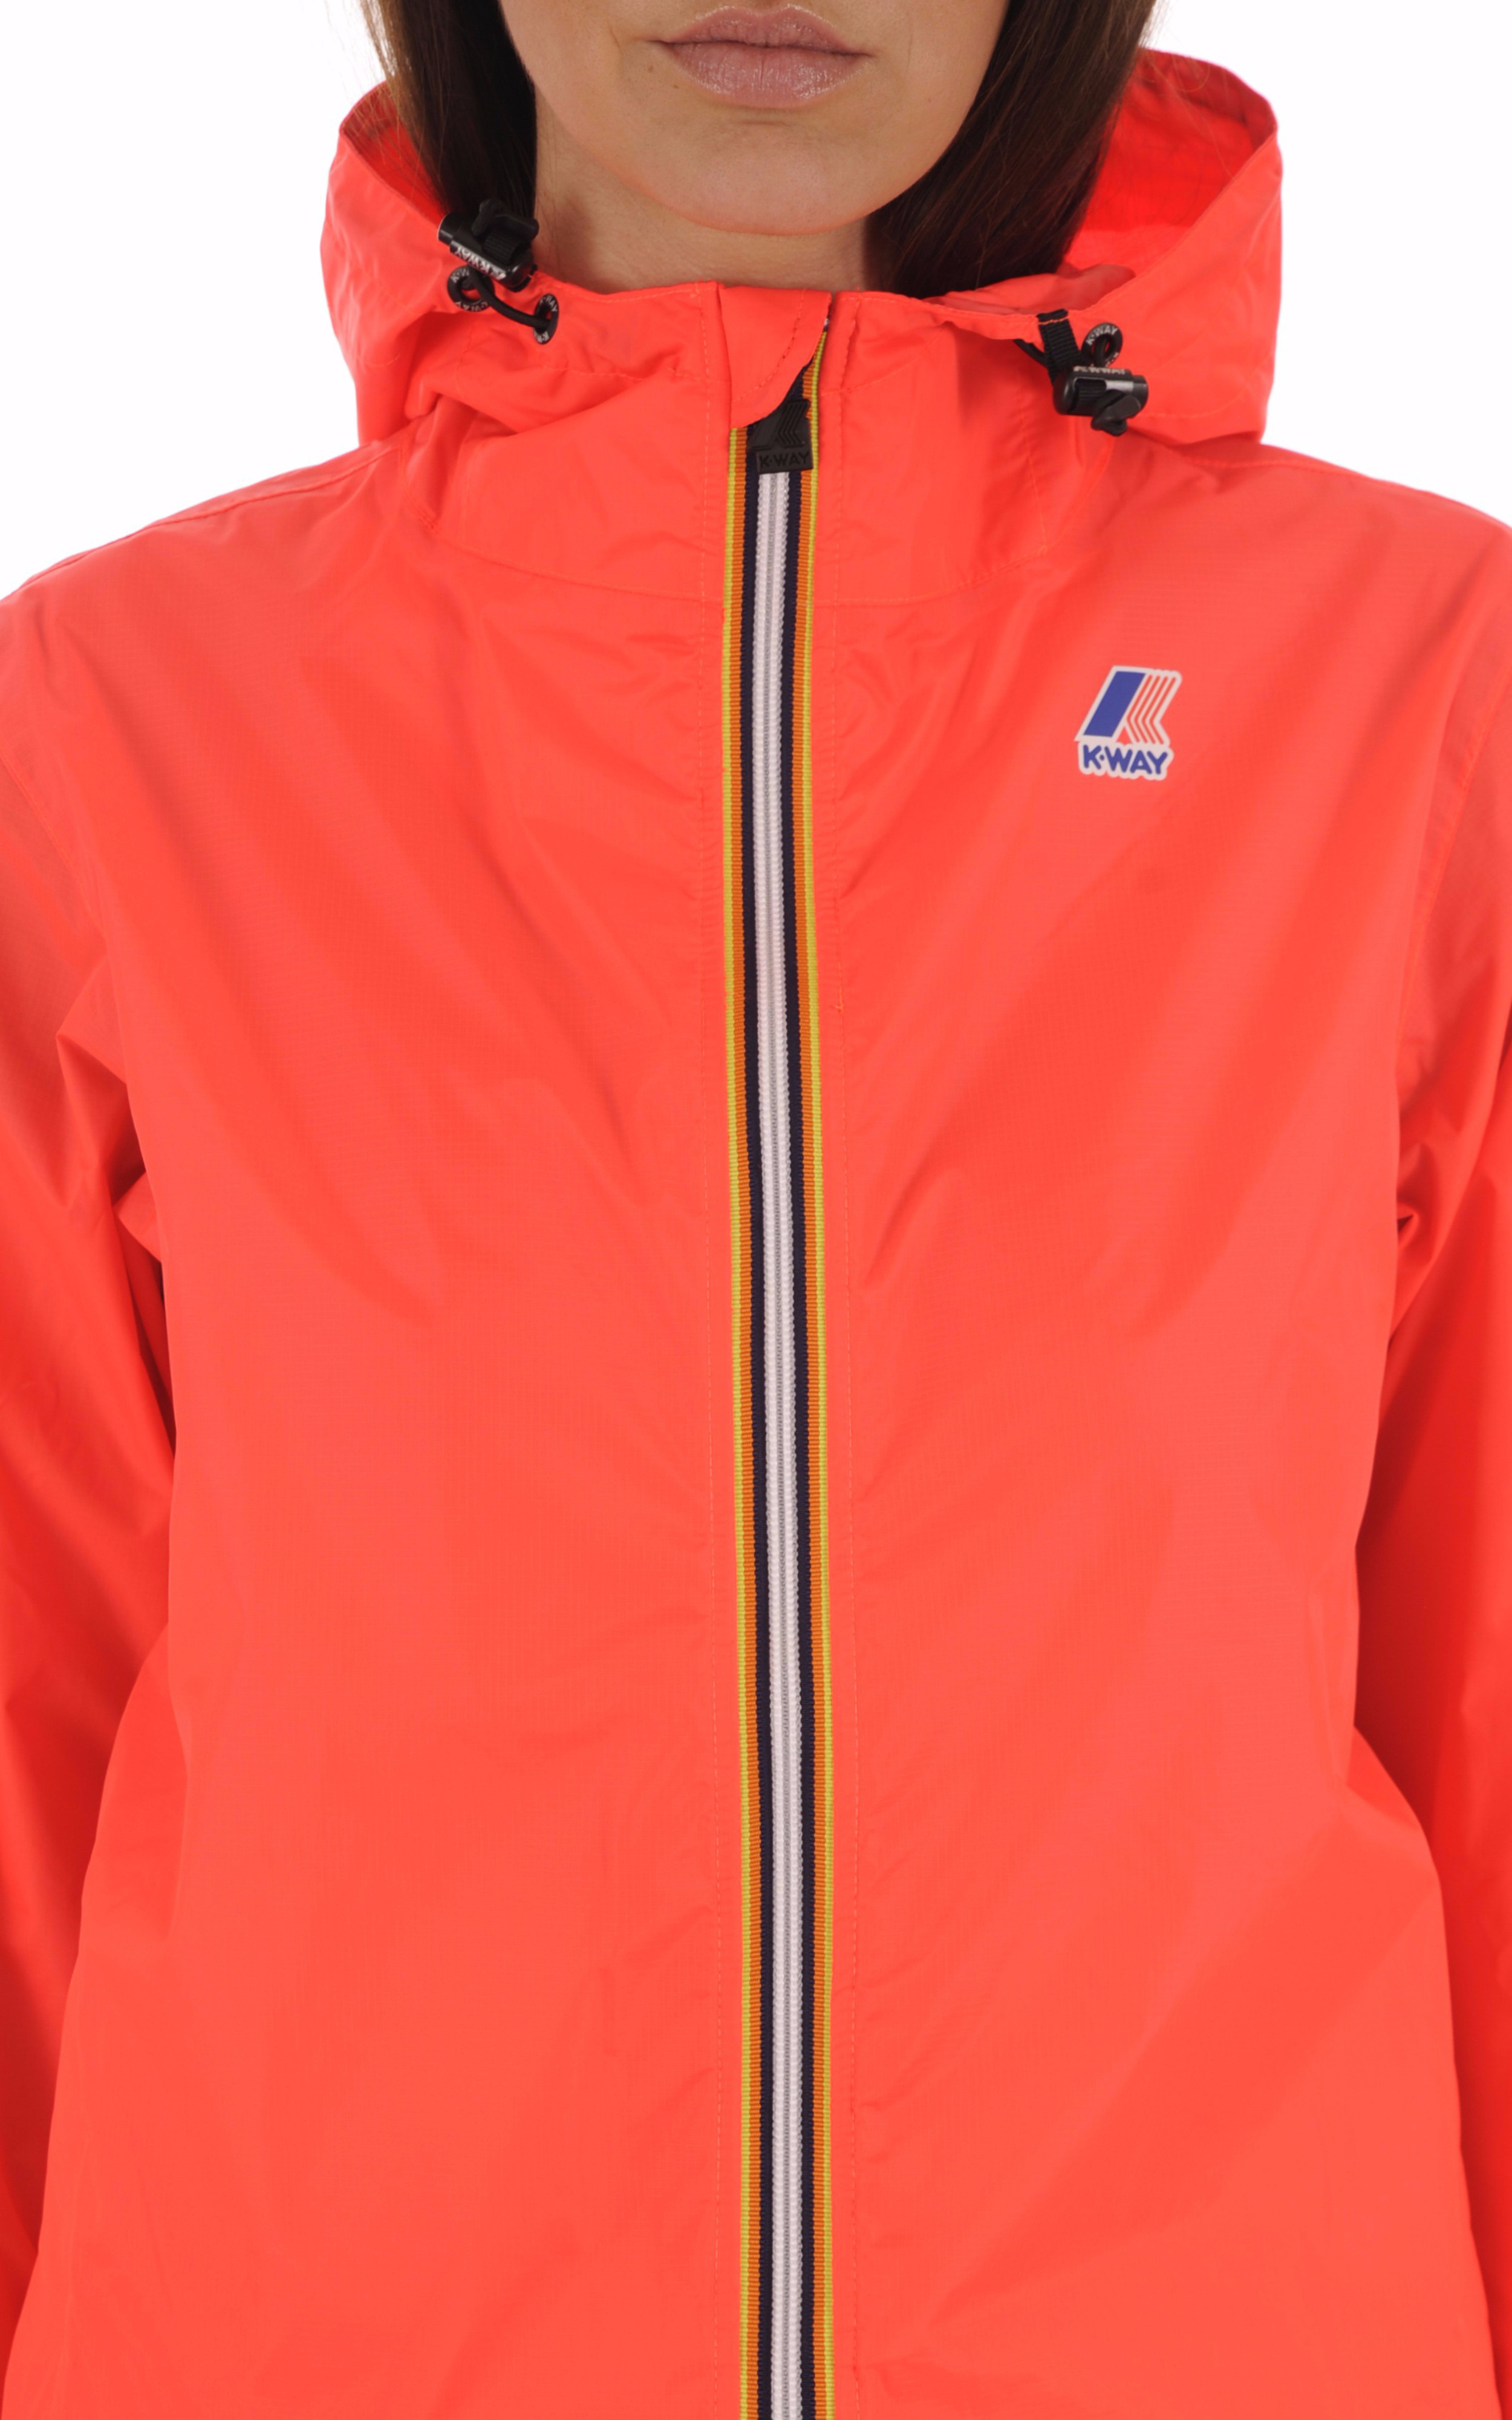 Le Vrai Claude 3.0 Red Fluo K-Way